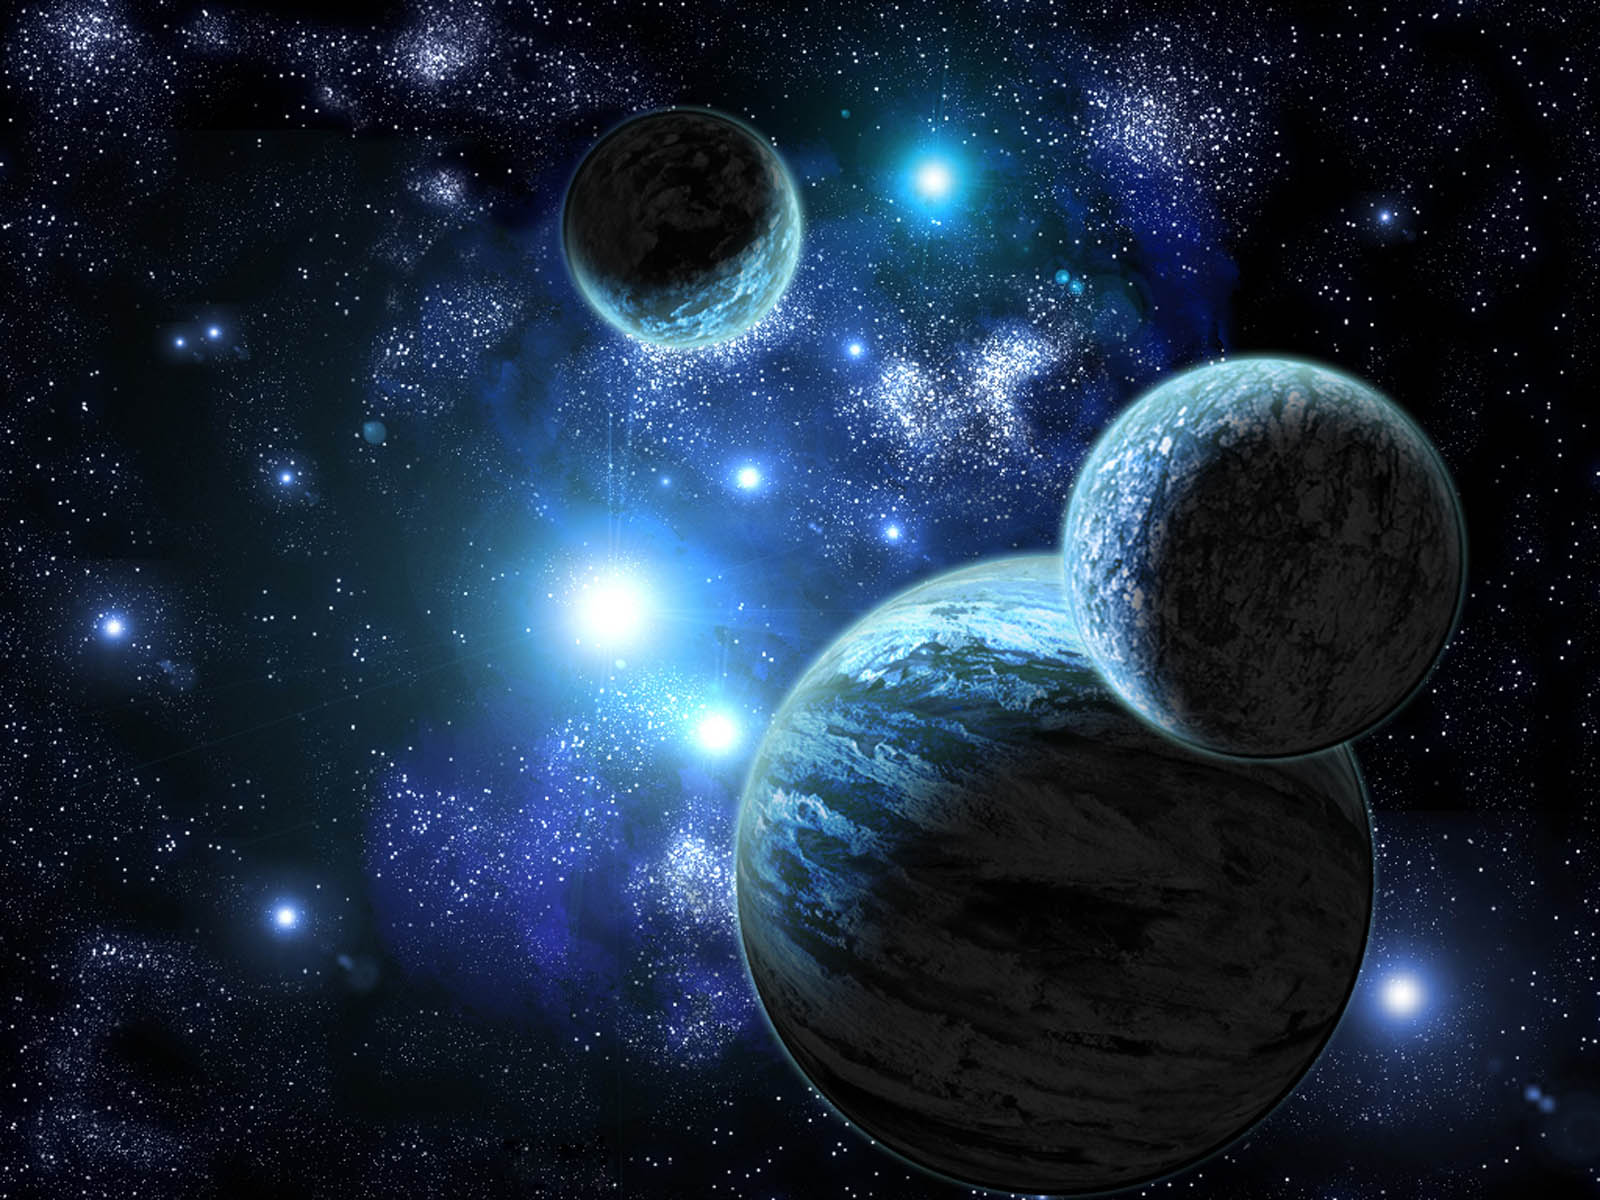 wallpapers outer space ForOuter Space Planets